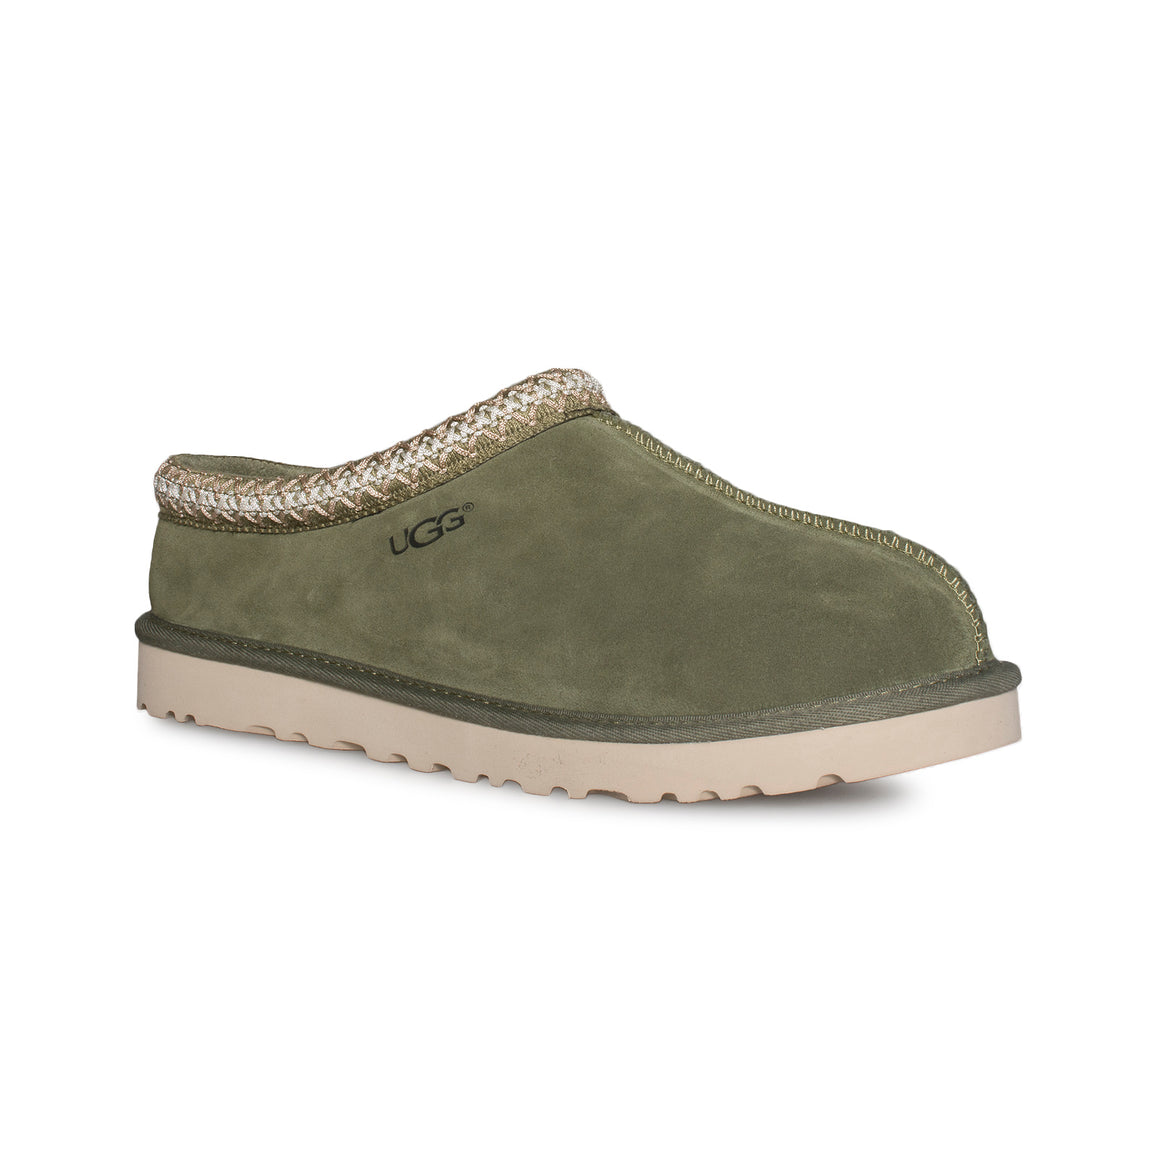 UGG Tasman Moss Green Slippers - Men's